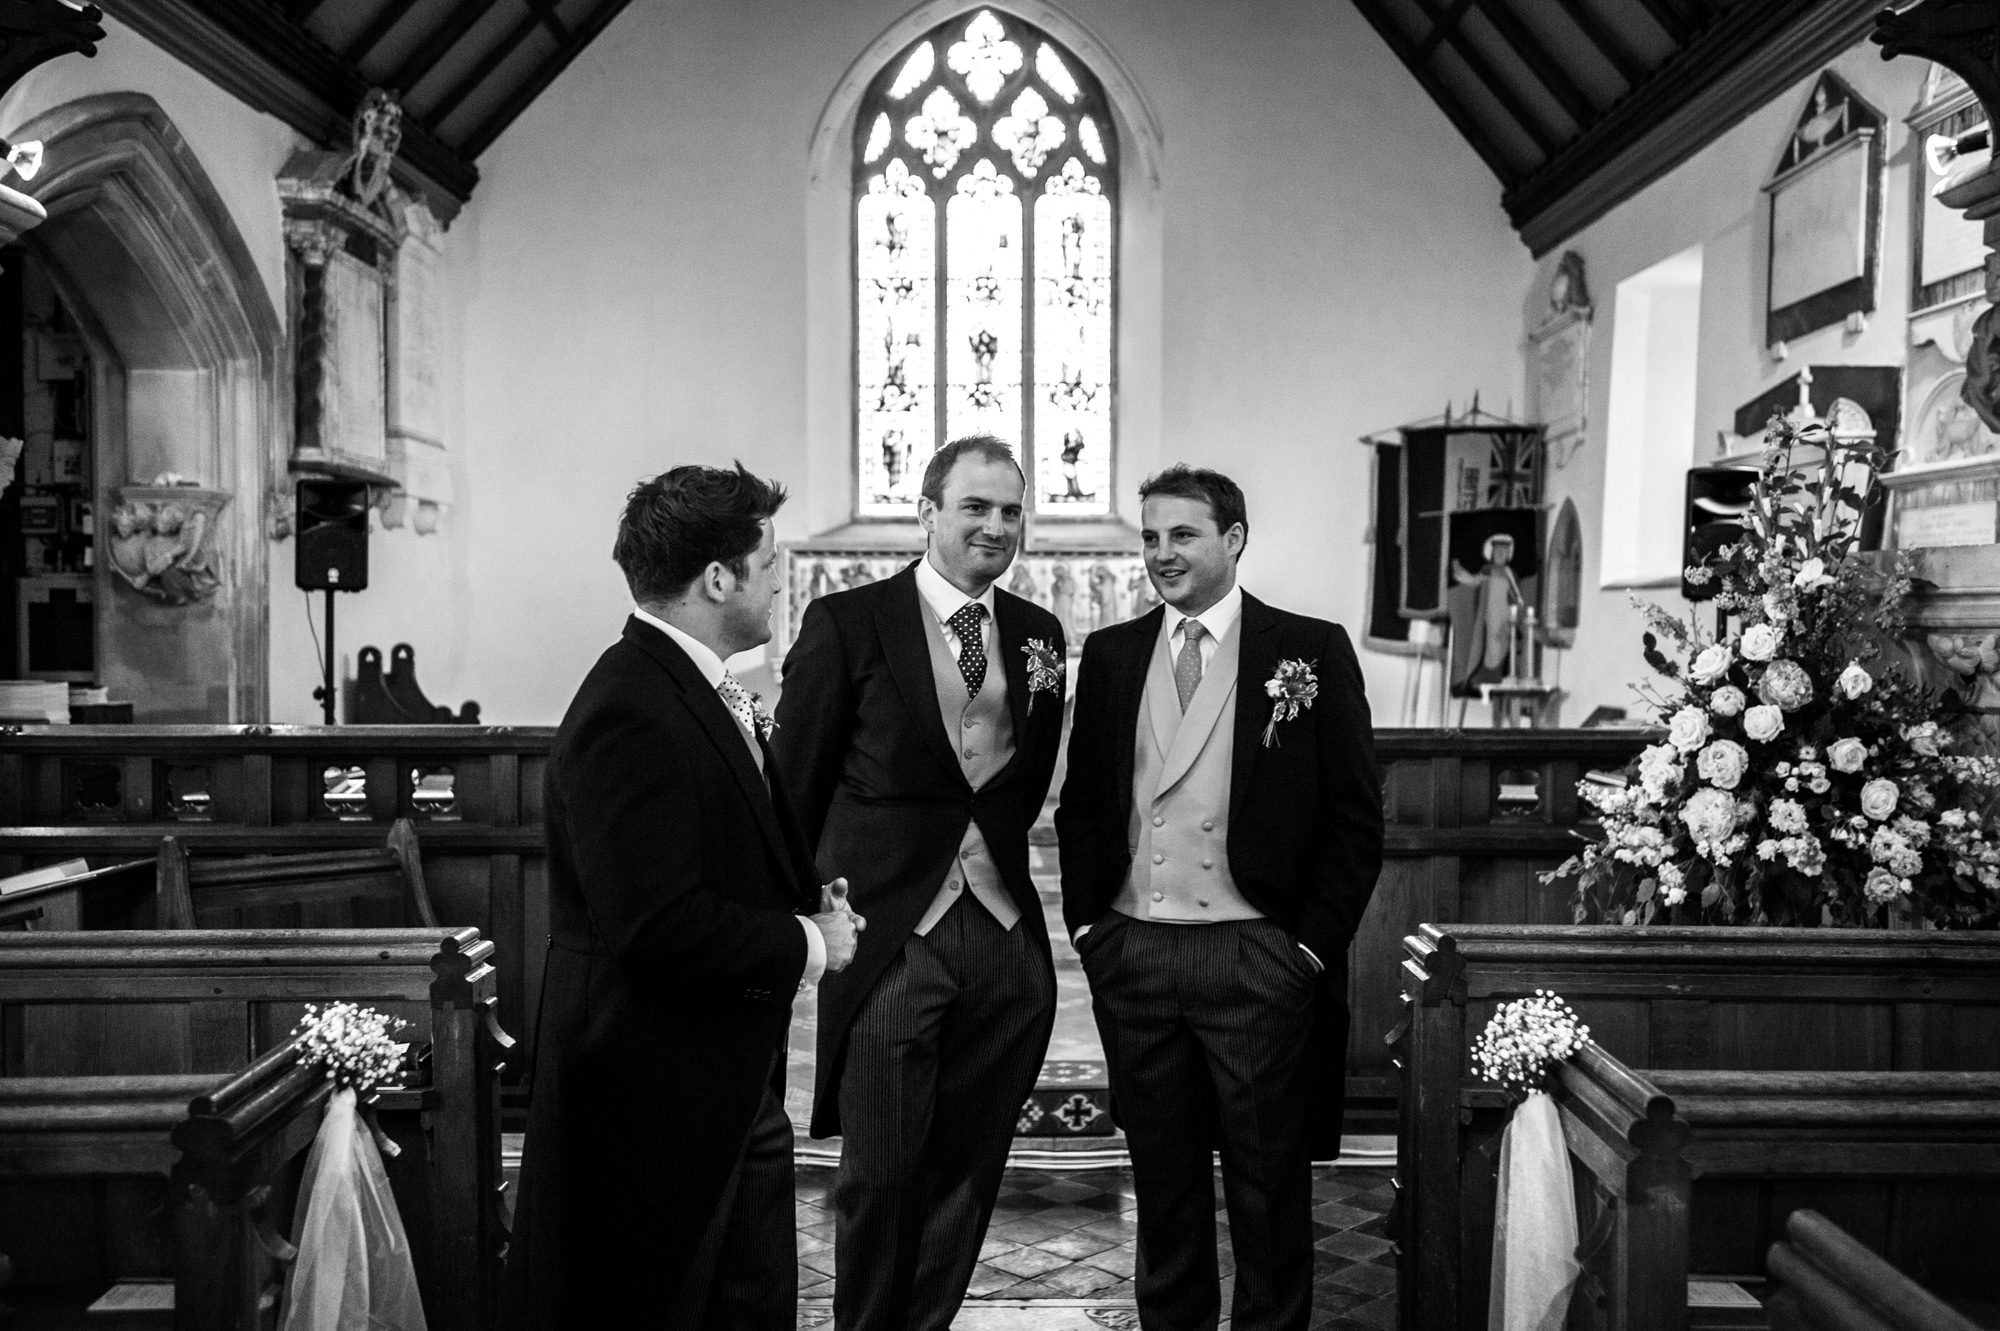 Cotswold Wedding Photography 11.09.186.jpg